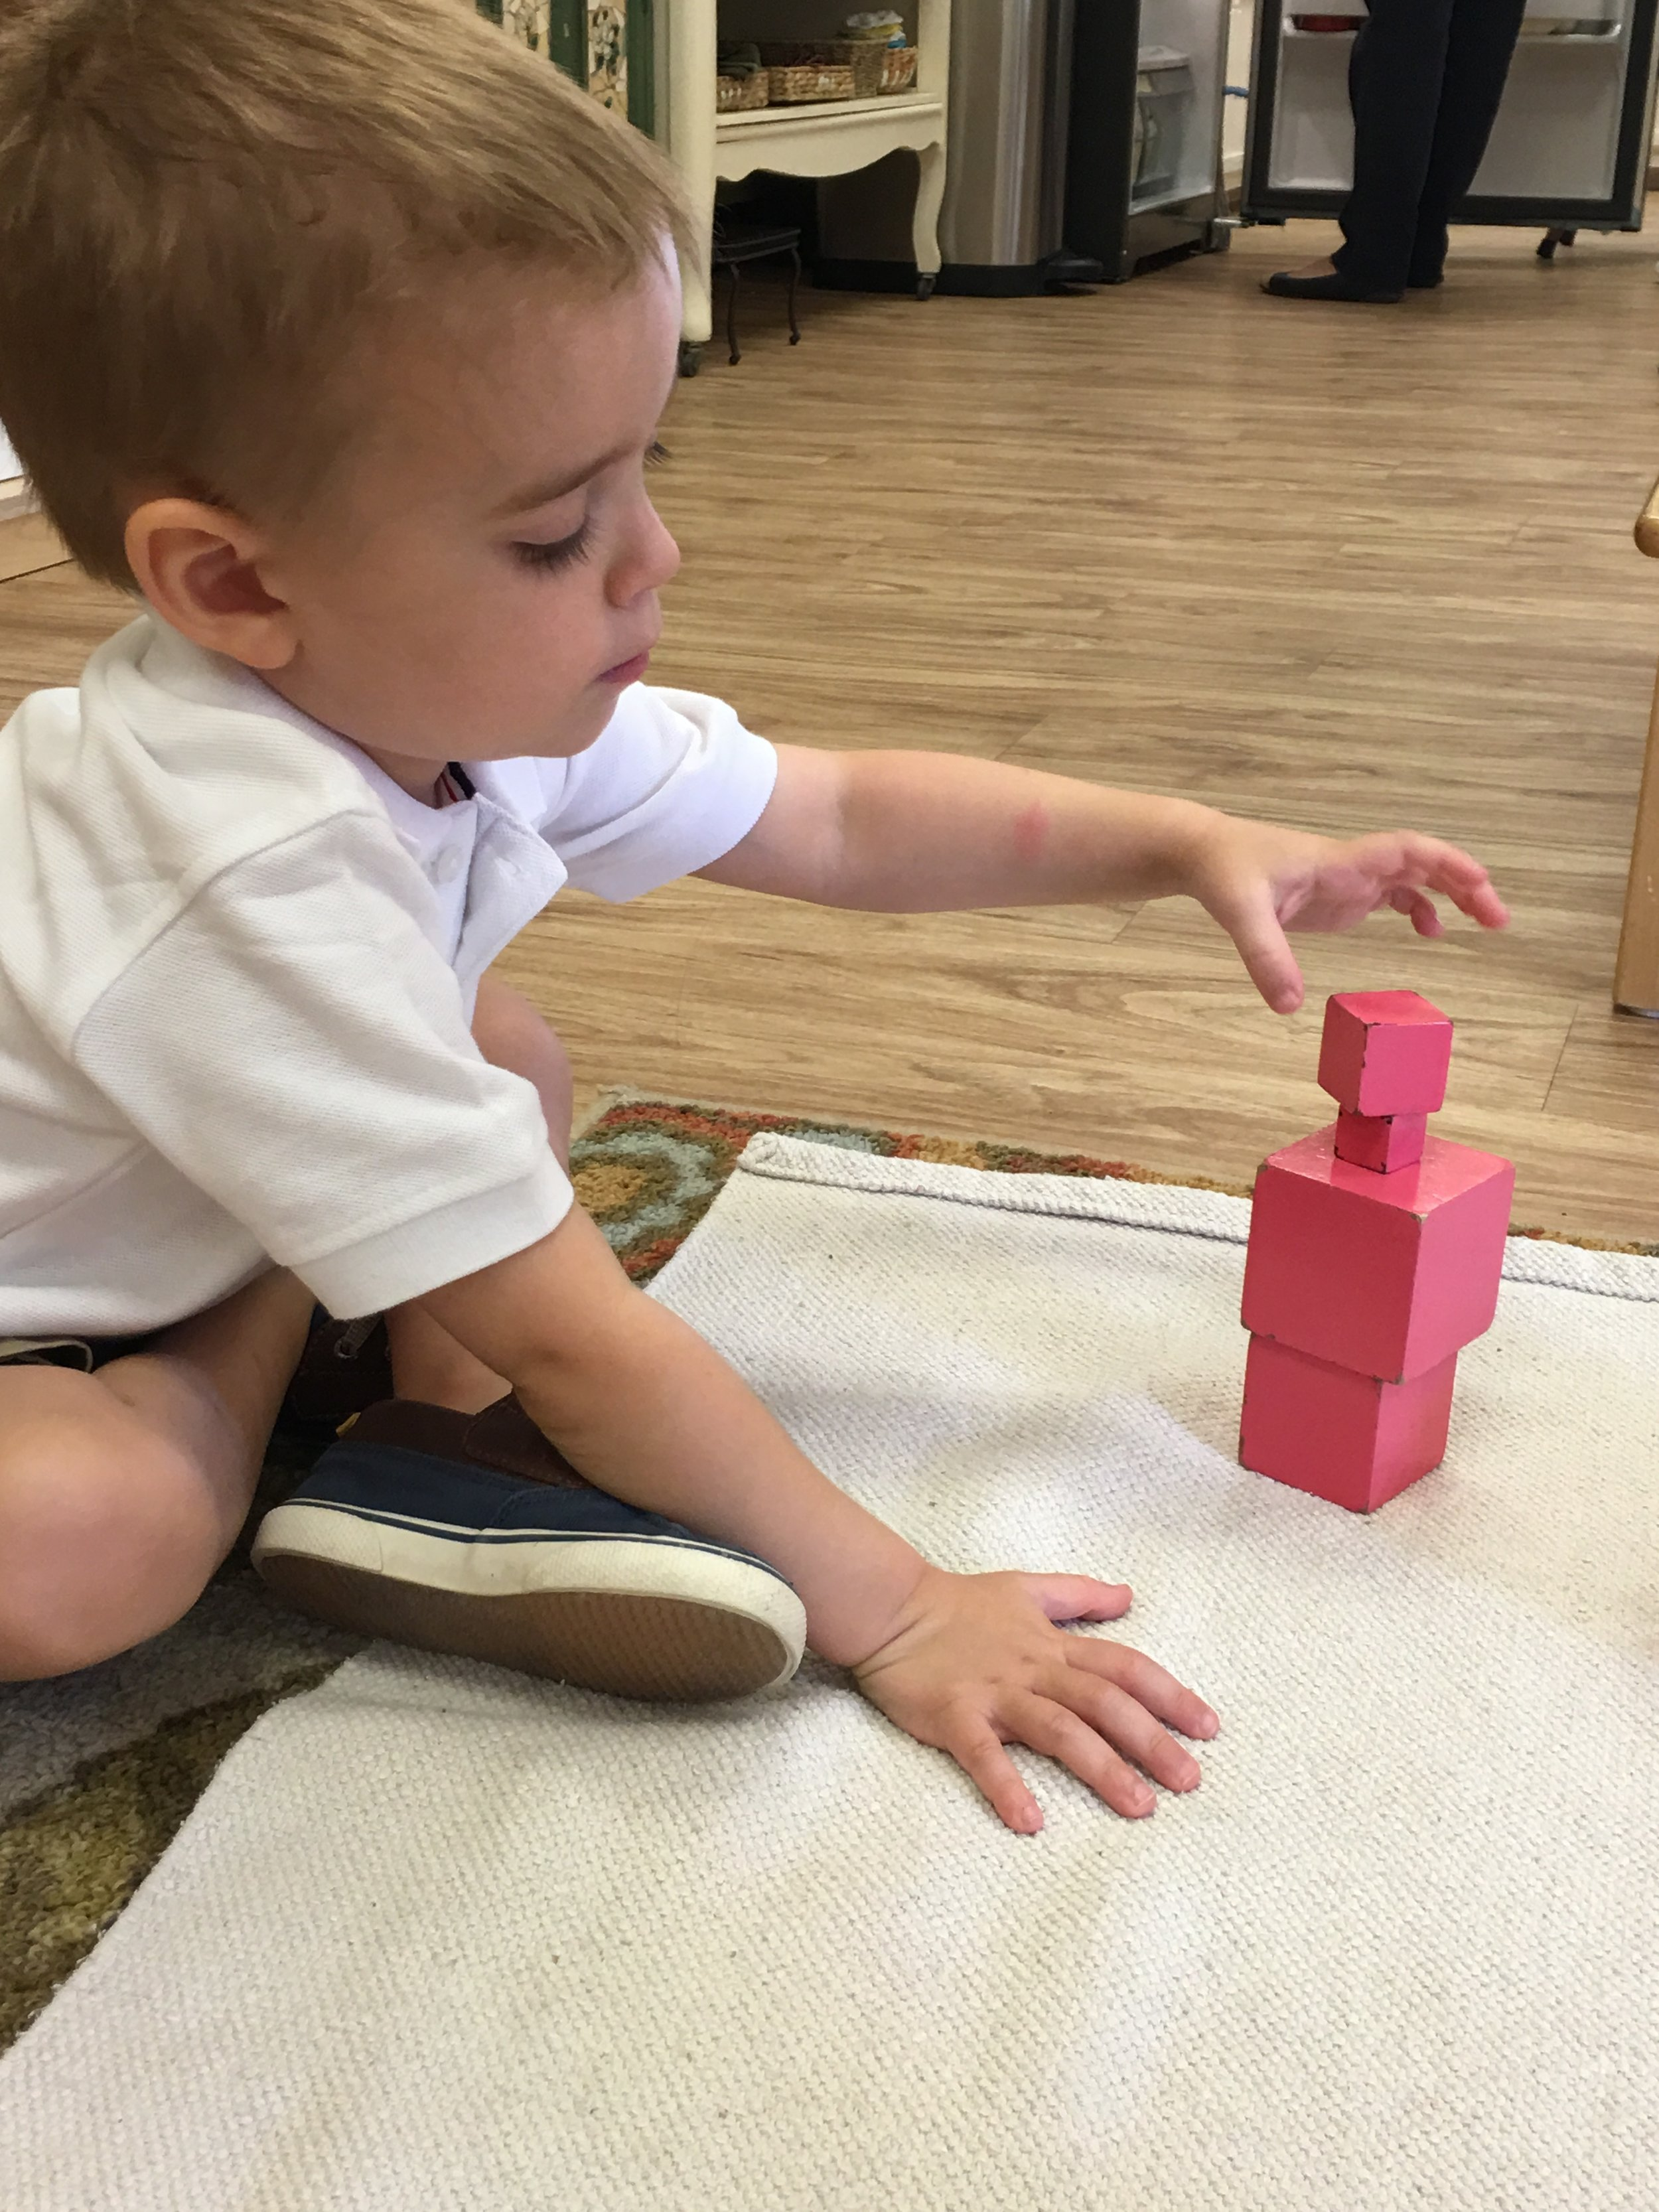 A child building the Pink Tower